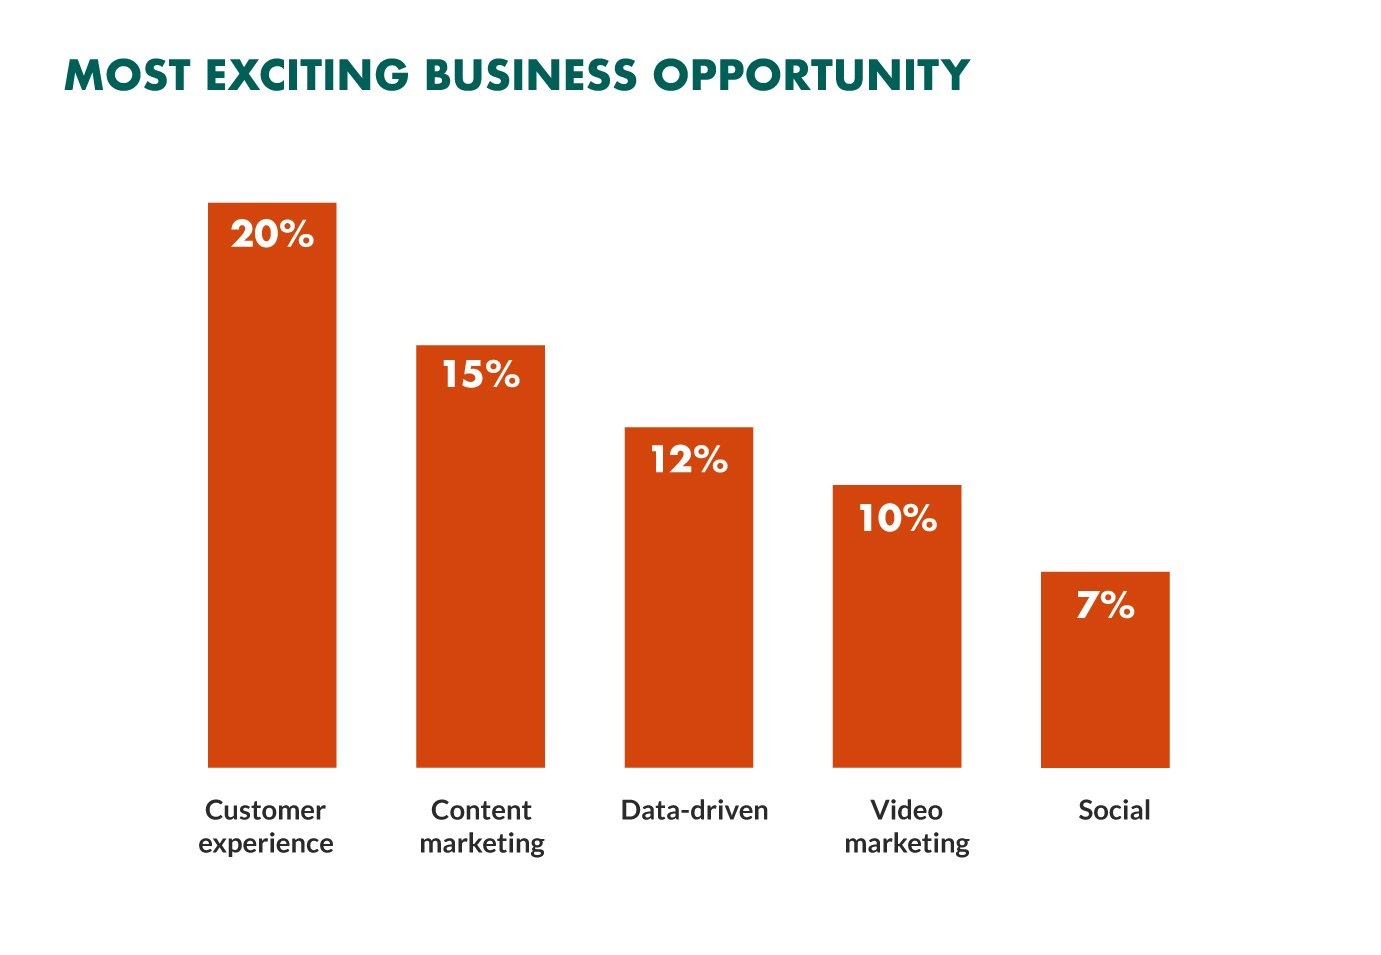 customer-experience-is-most-exciting-business-opportunity